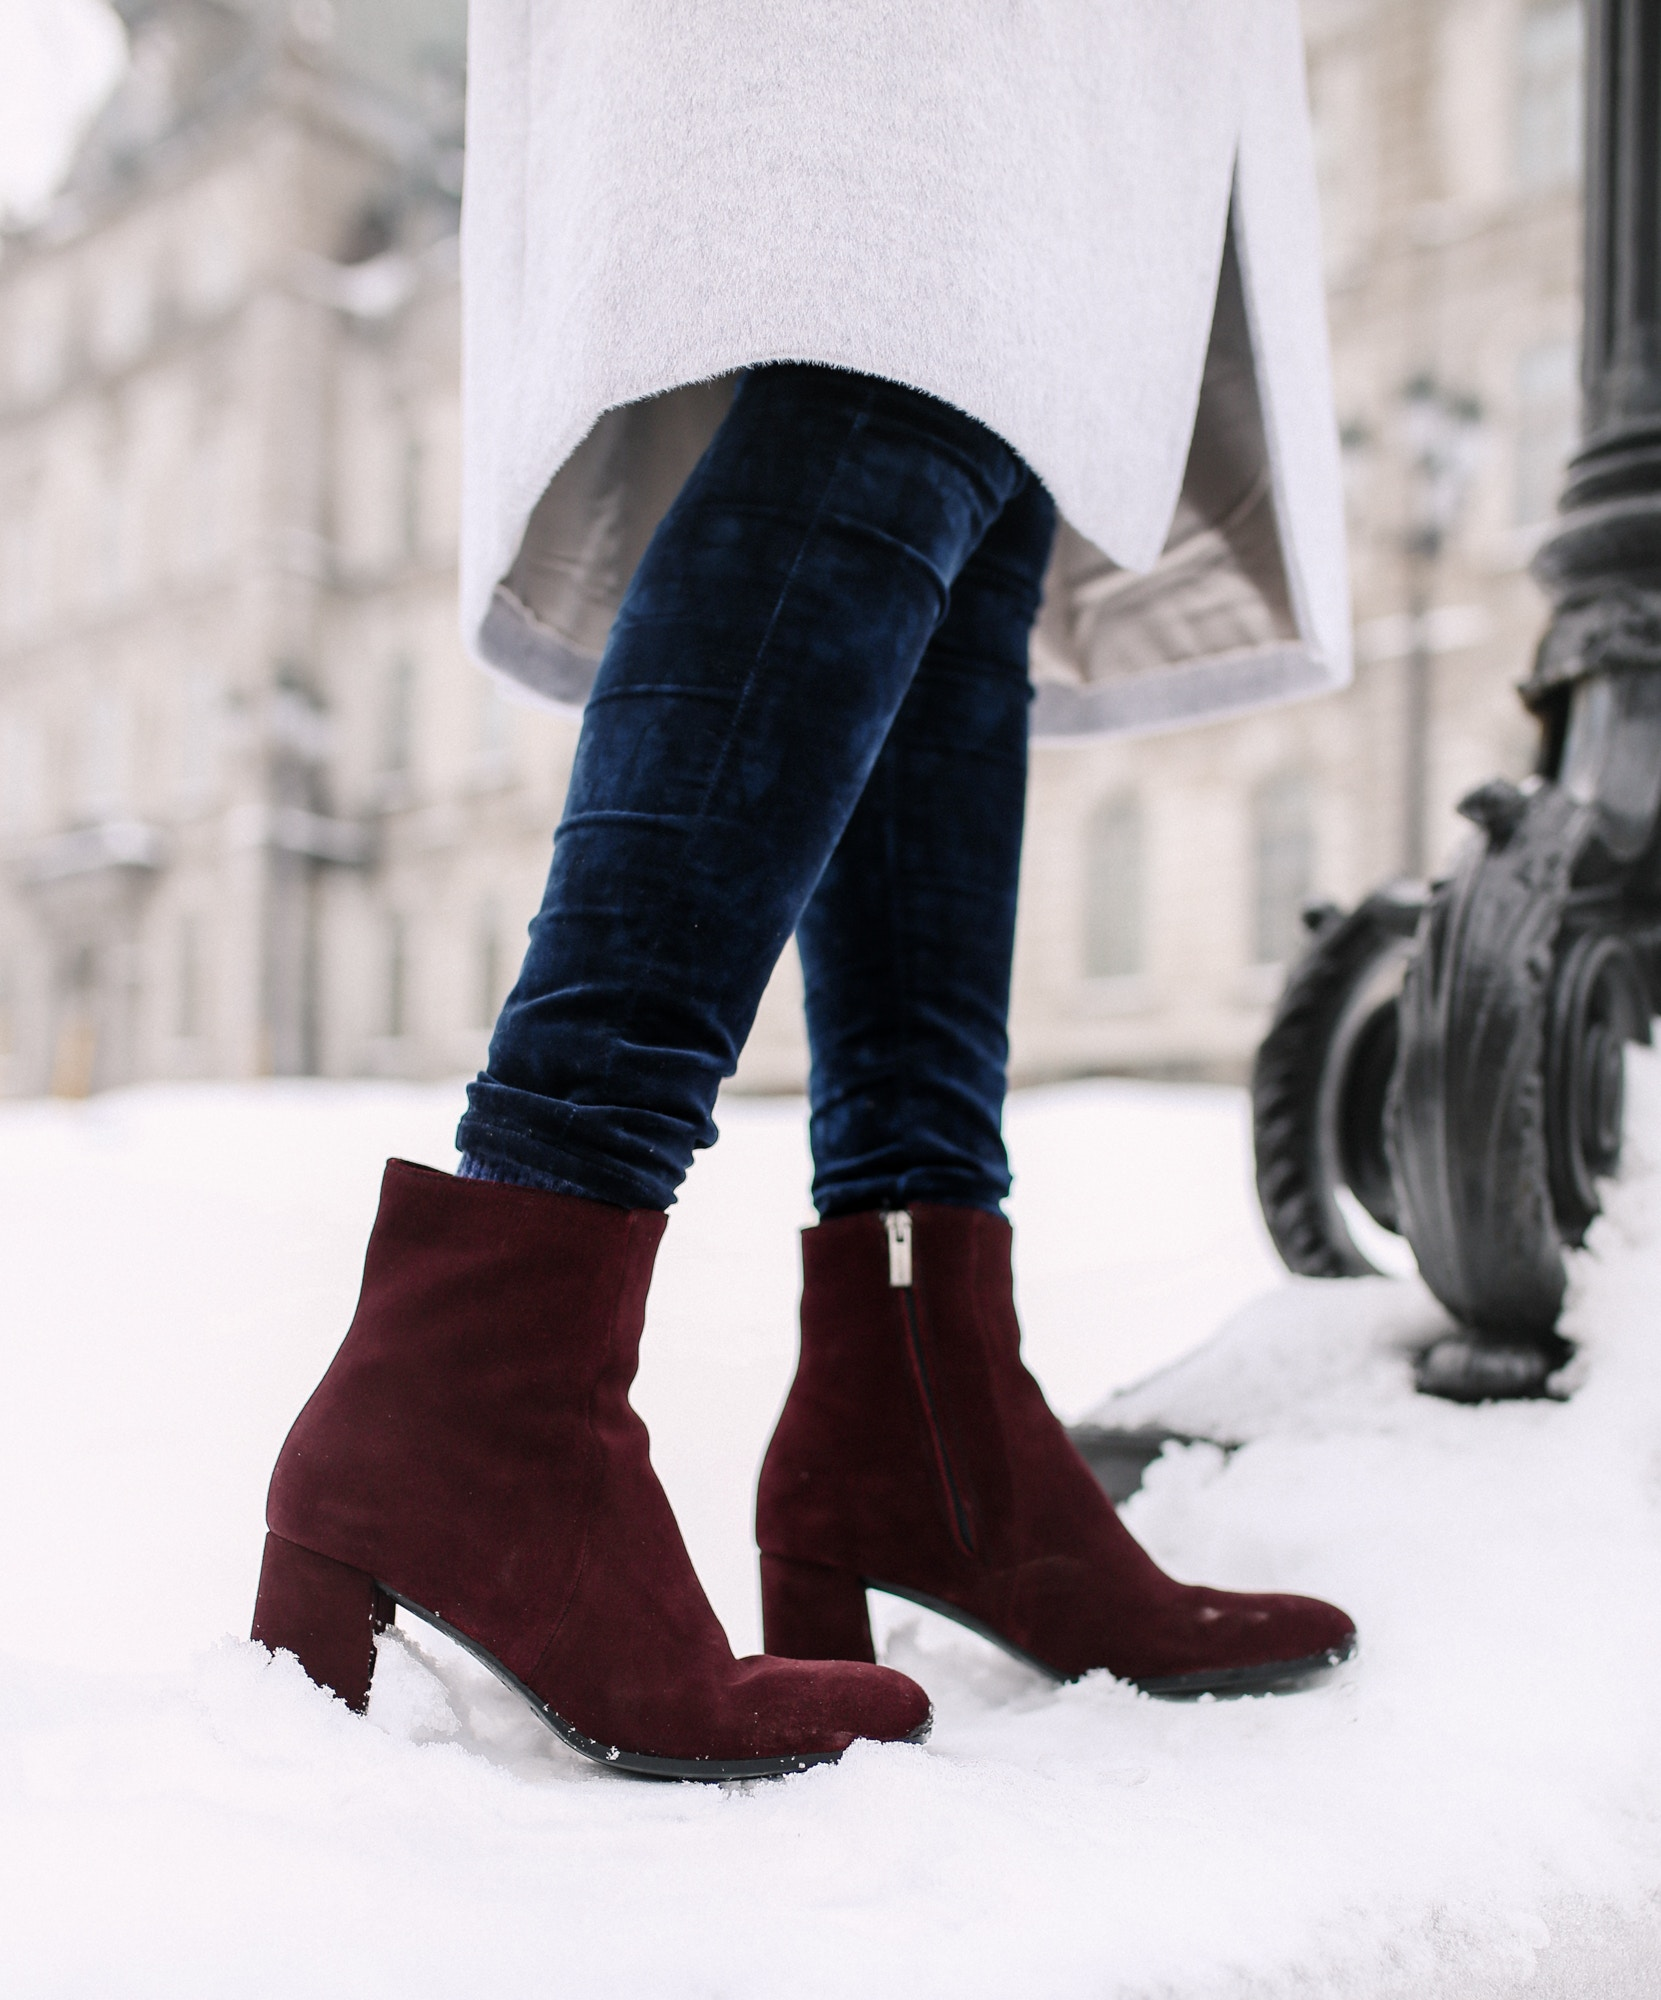 La Canadienne Jojo Boots Review - the perfect waterproof boot for work or play. Made in Canada, these boots are so chic and comfortable.